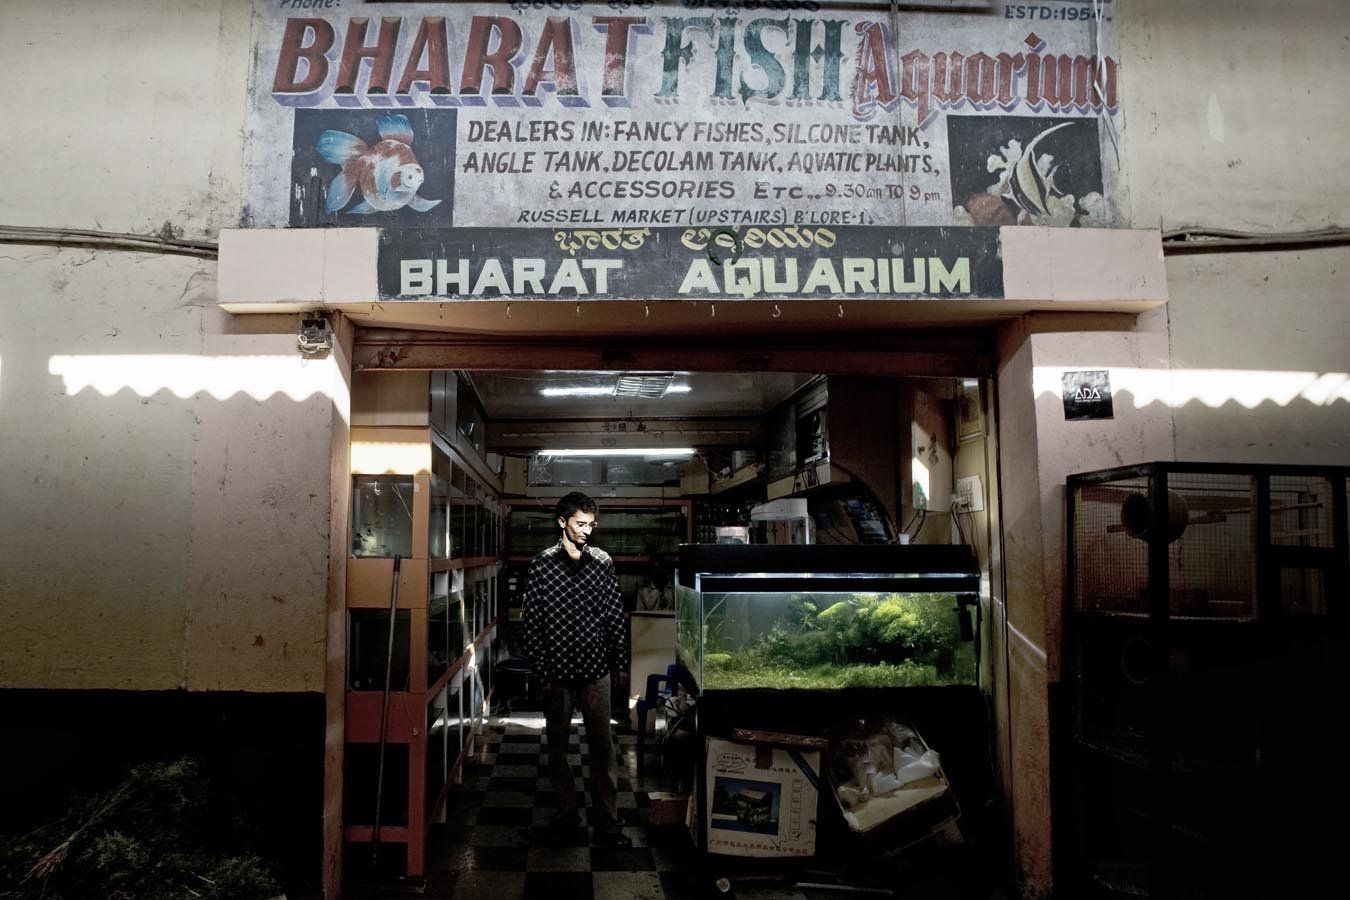 Fish aquarium price in bangalore - Then He Tells Me About His Grandfather A Ticket Collector In The Railways Who Decided To Follow His Passion And Started The Bharat Fish Aquarium In 1954